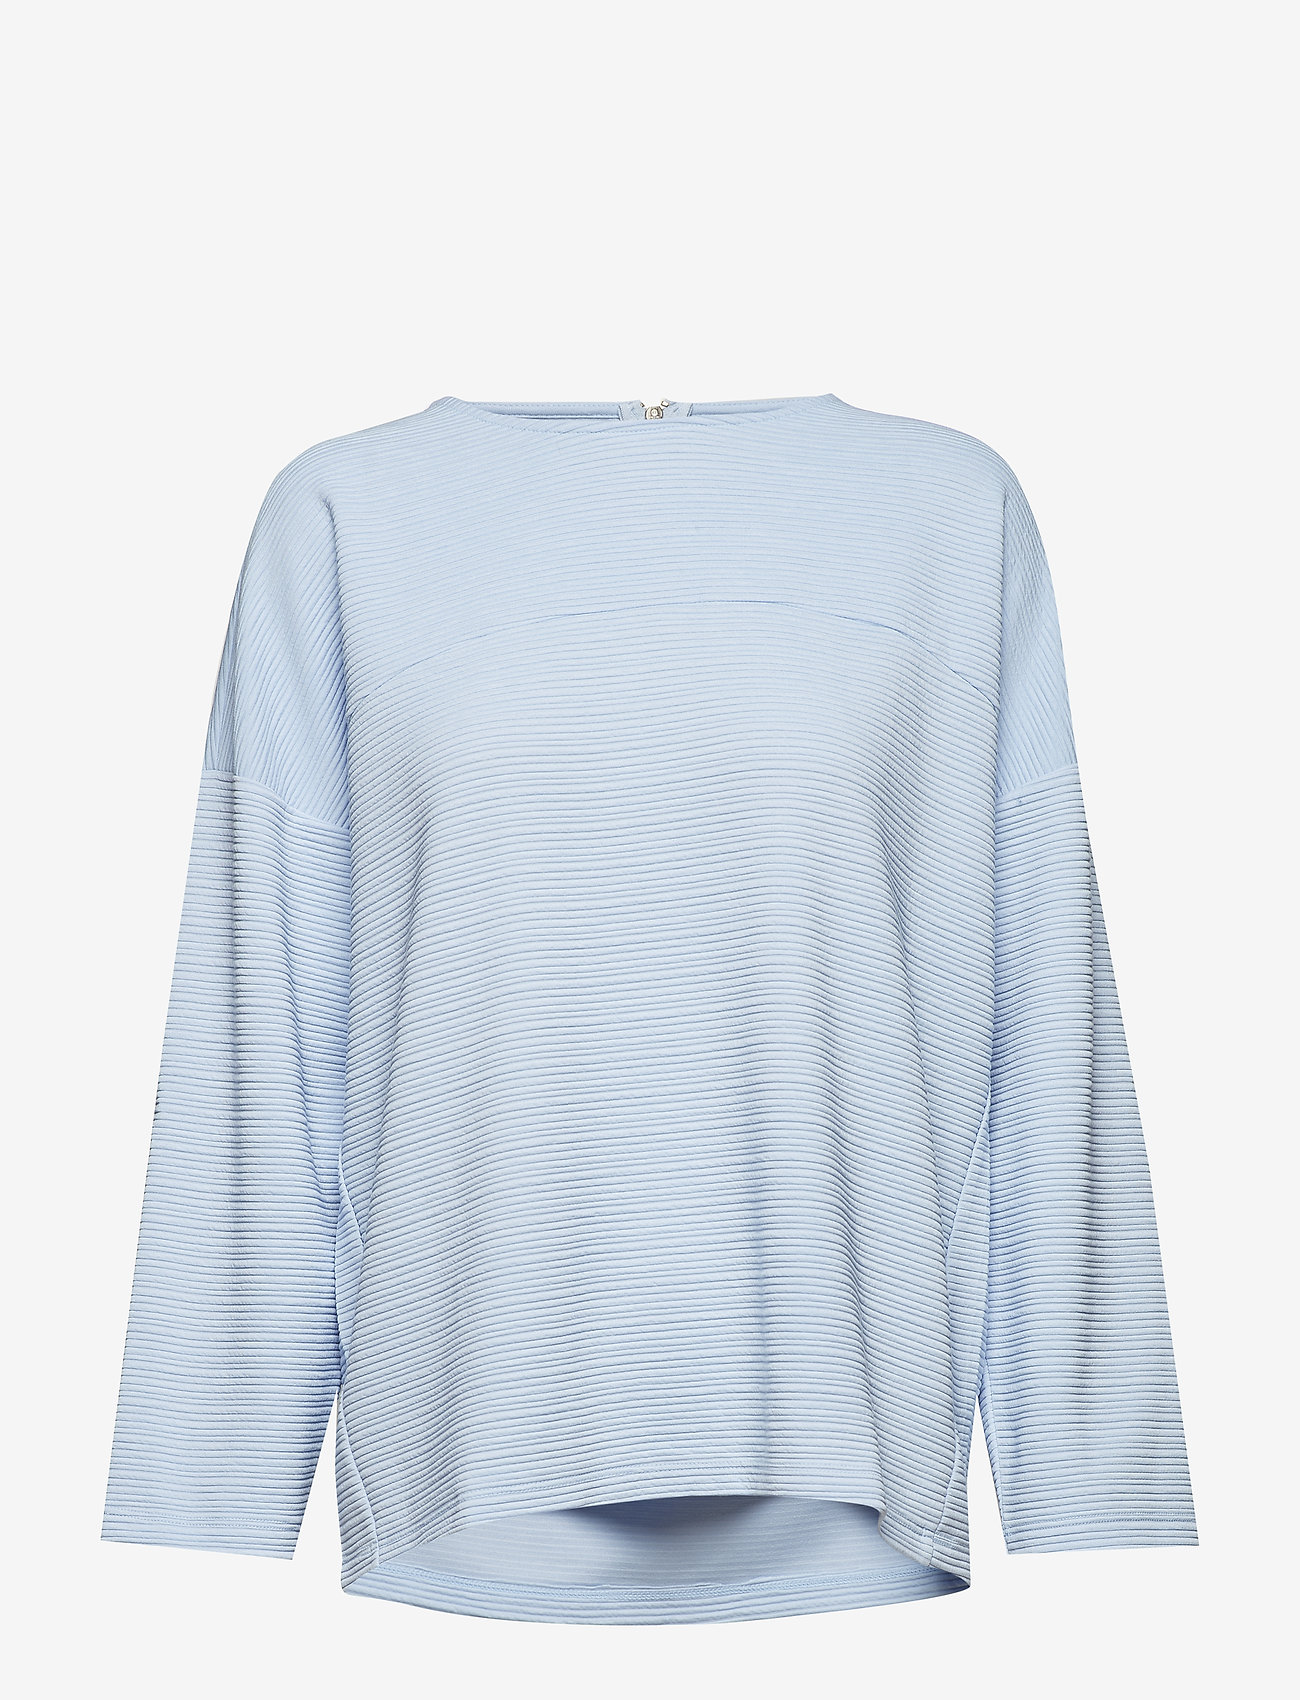 ONLY - onlLECO MAISE L/S ZIP TOP JRS - long sleeved blouses - cashmere blue